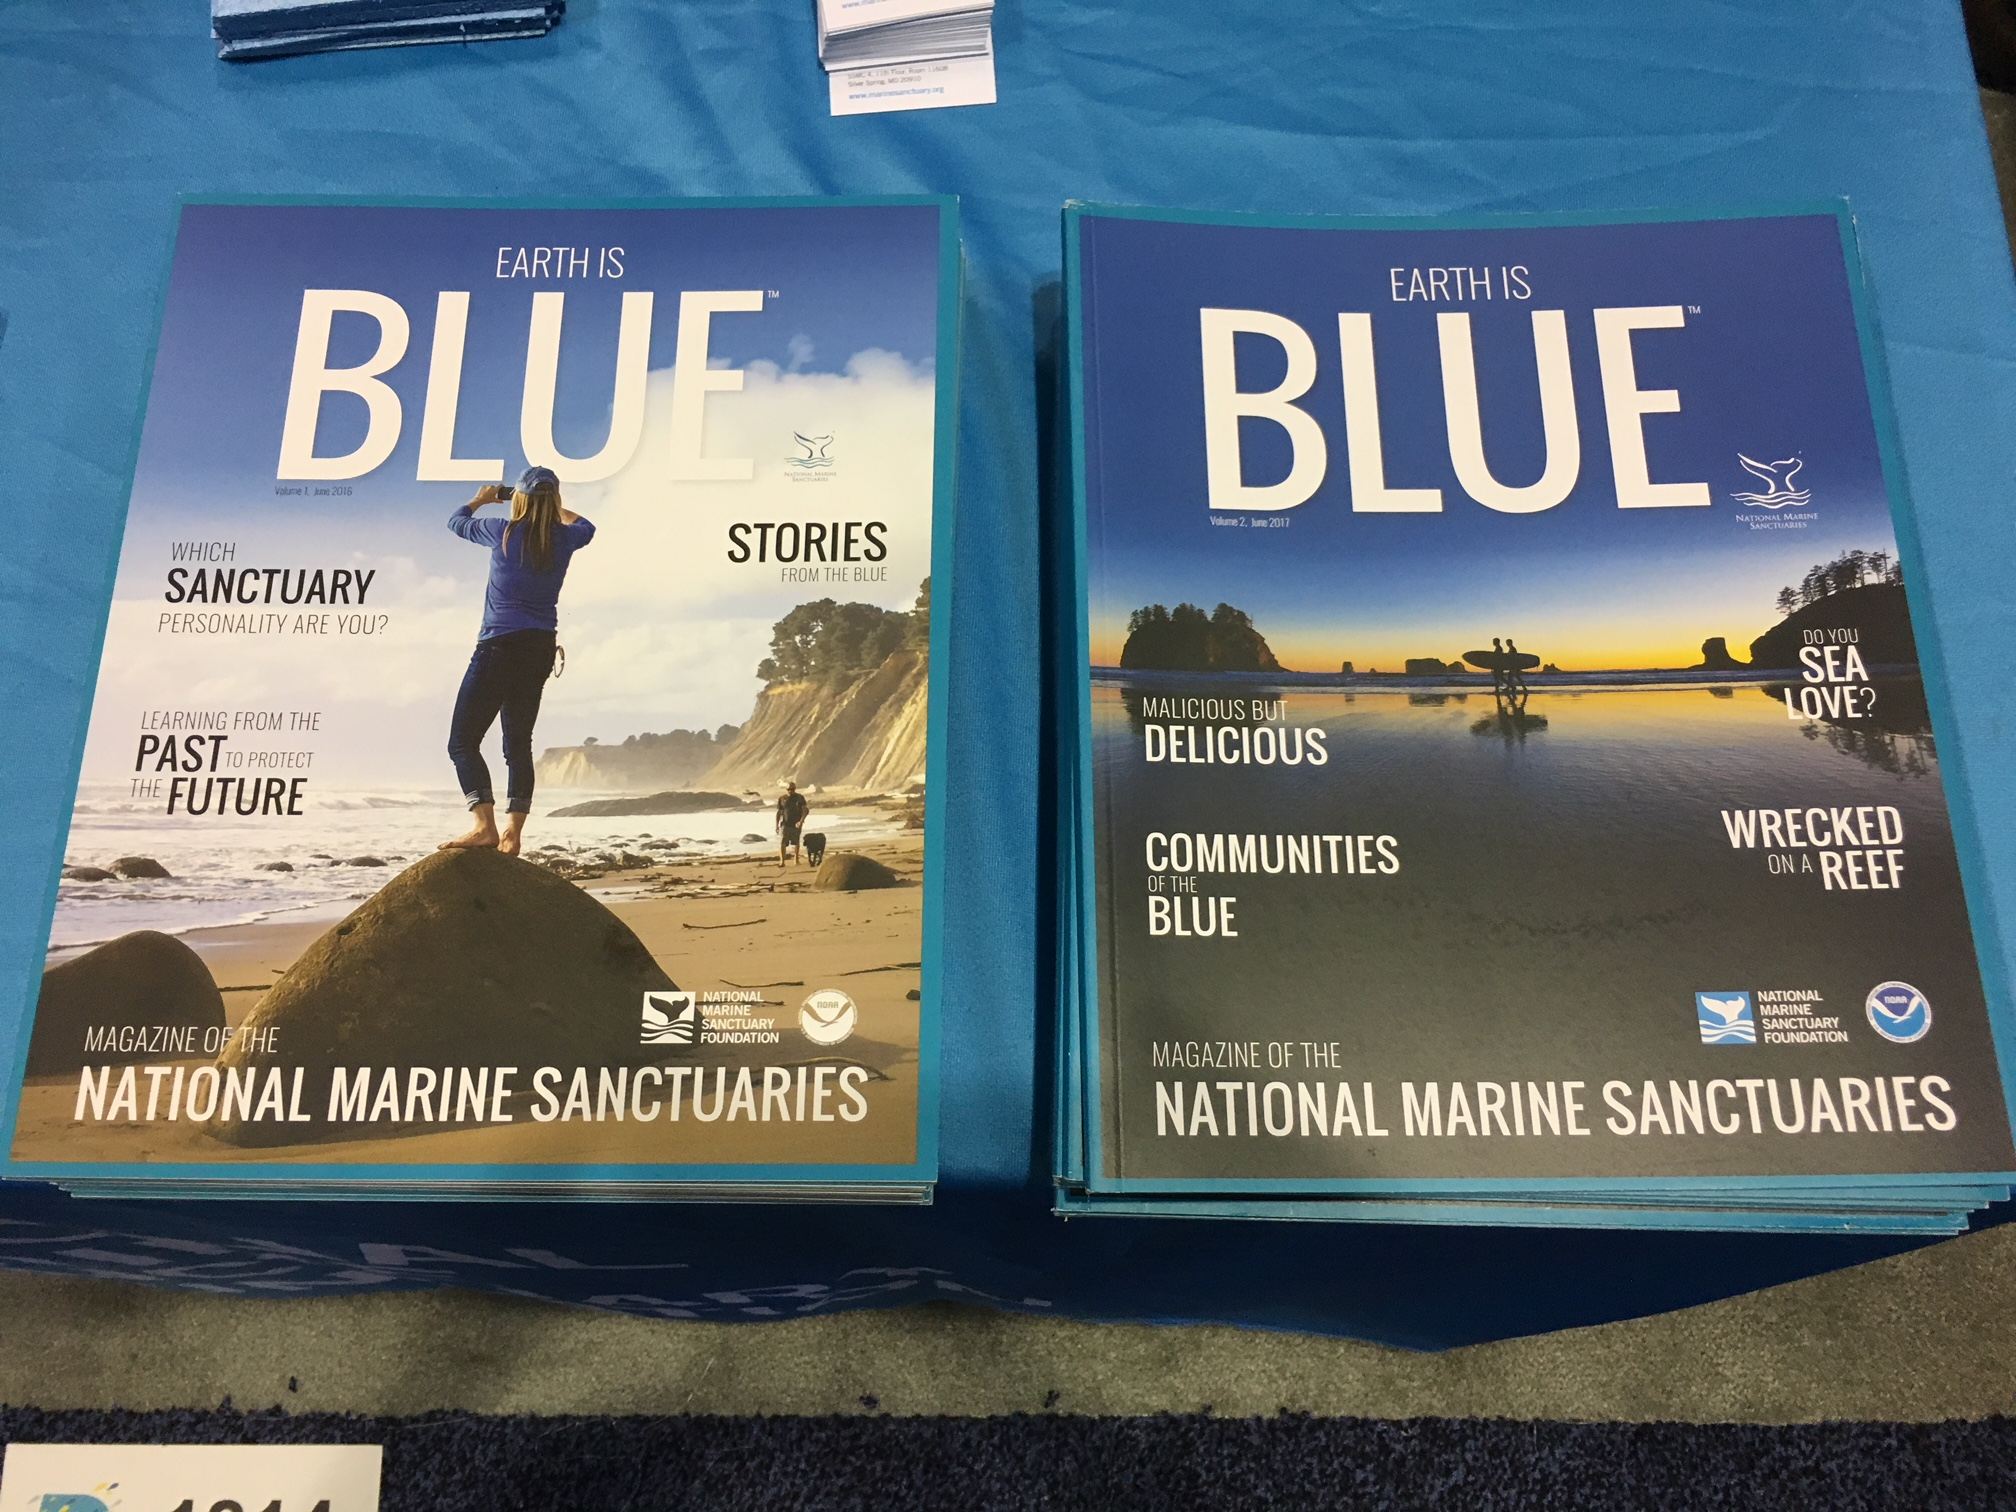 Earth is Blue. Learn about your local sanctuaries.